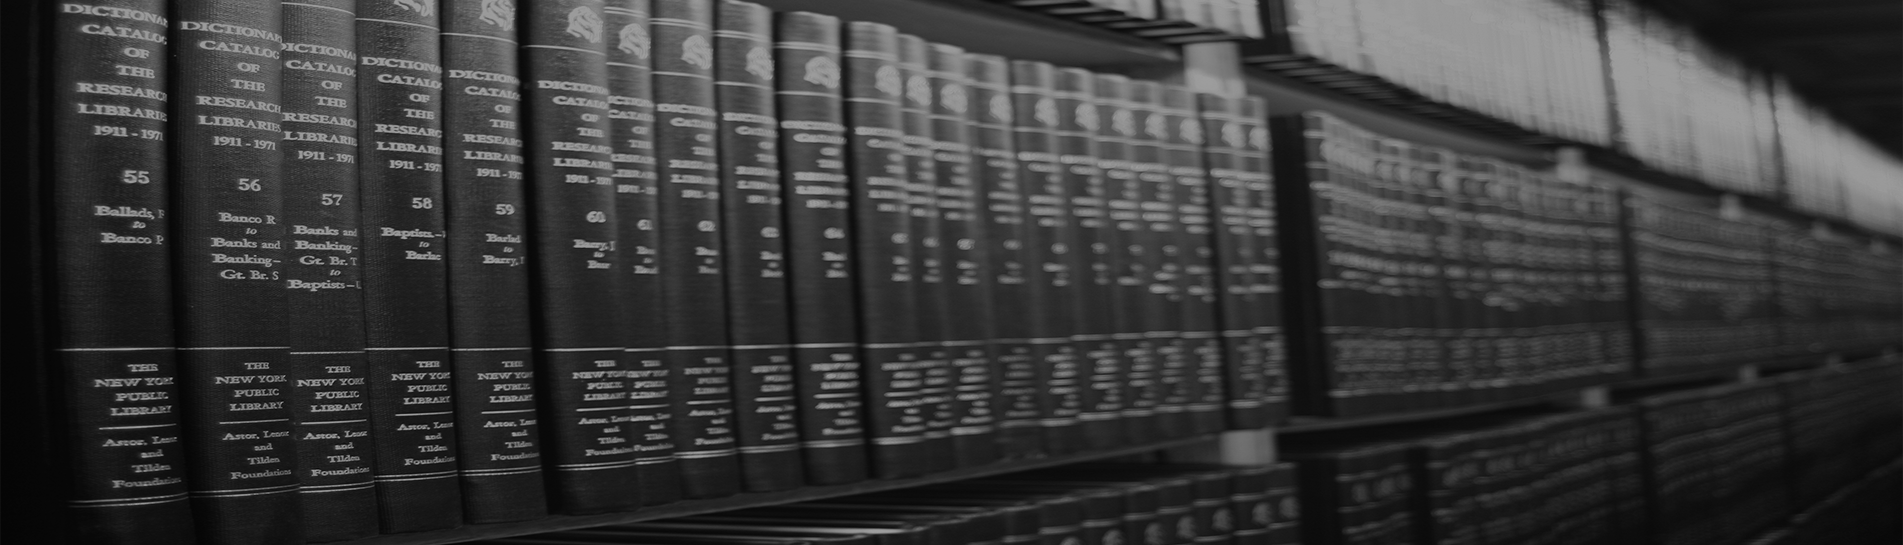 Slider-LAW-BOOKS-Black-and-White